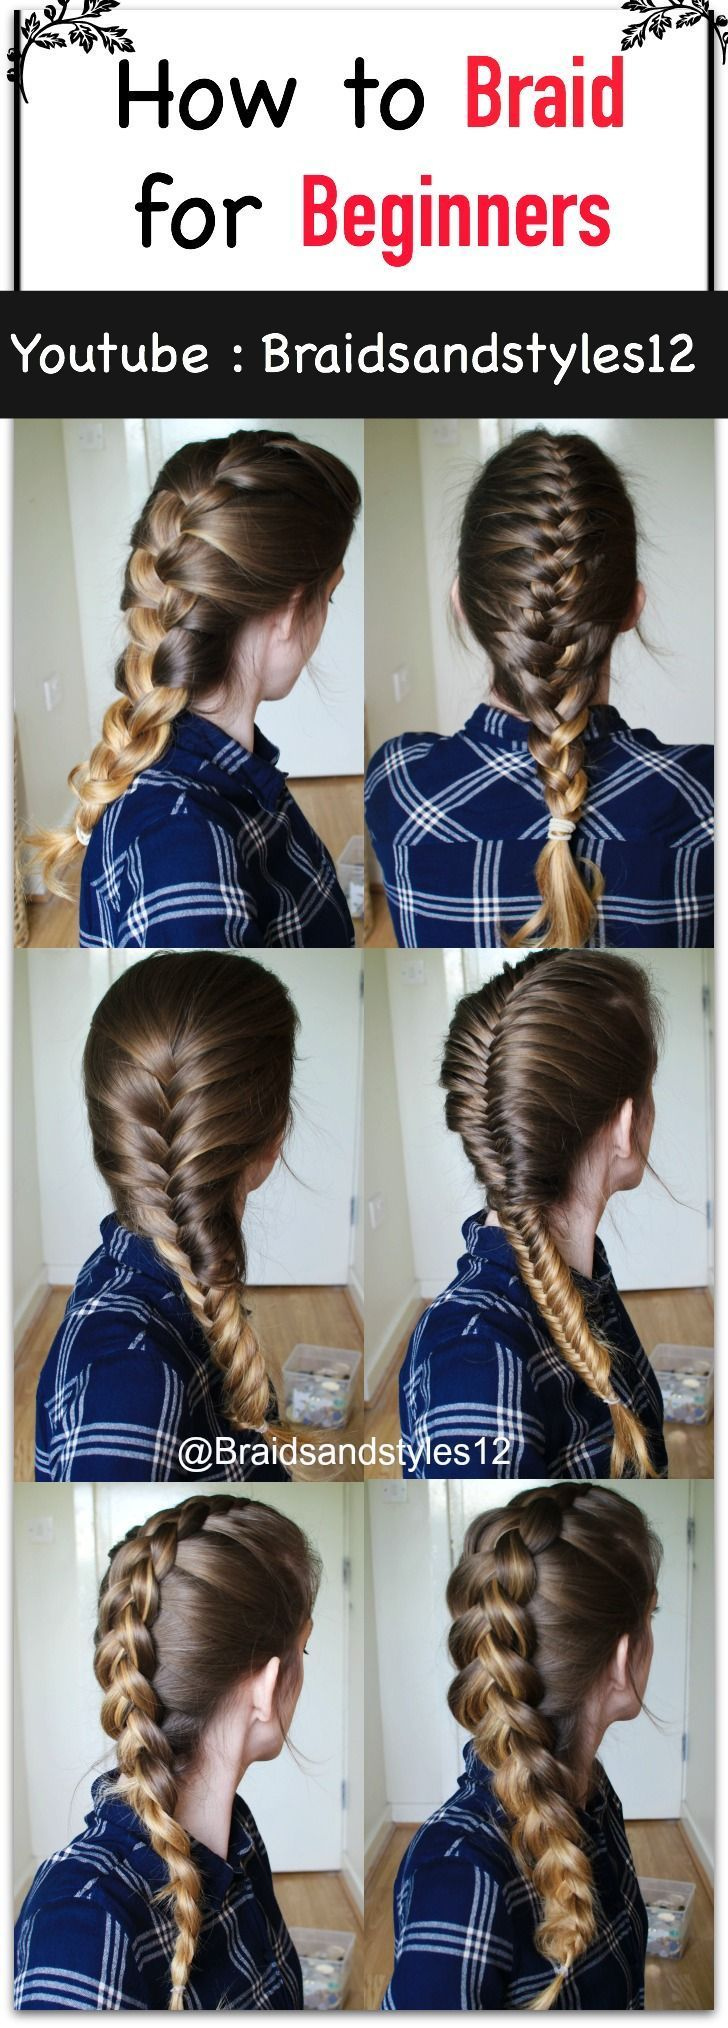 Mens haircut tutorials how to braid your own hair for beginners by braidsandstyles click